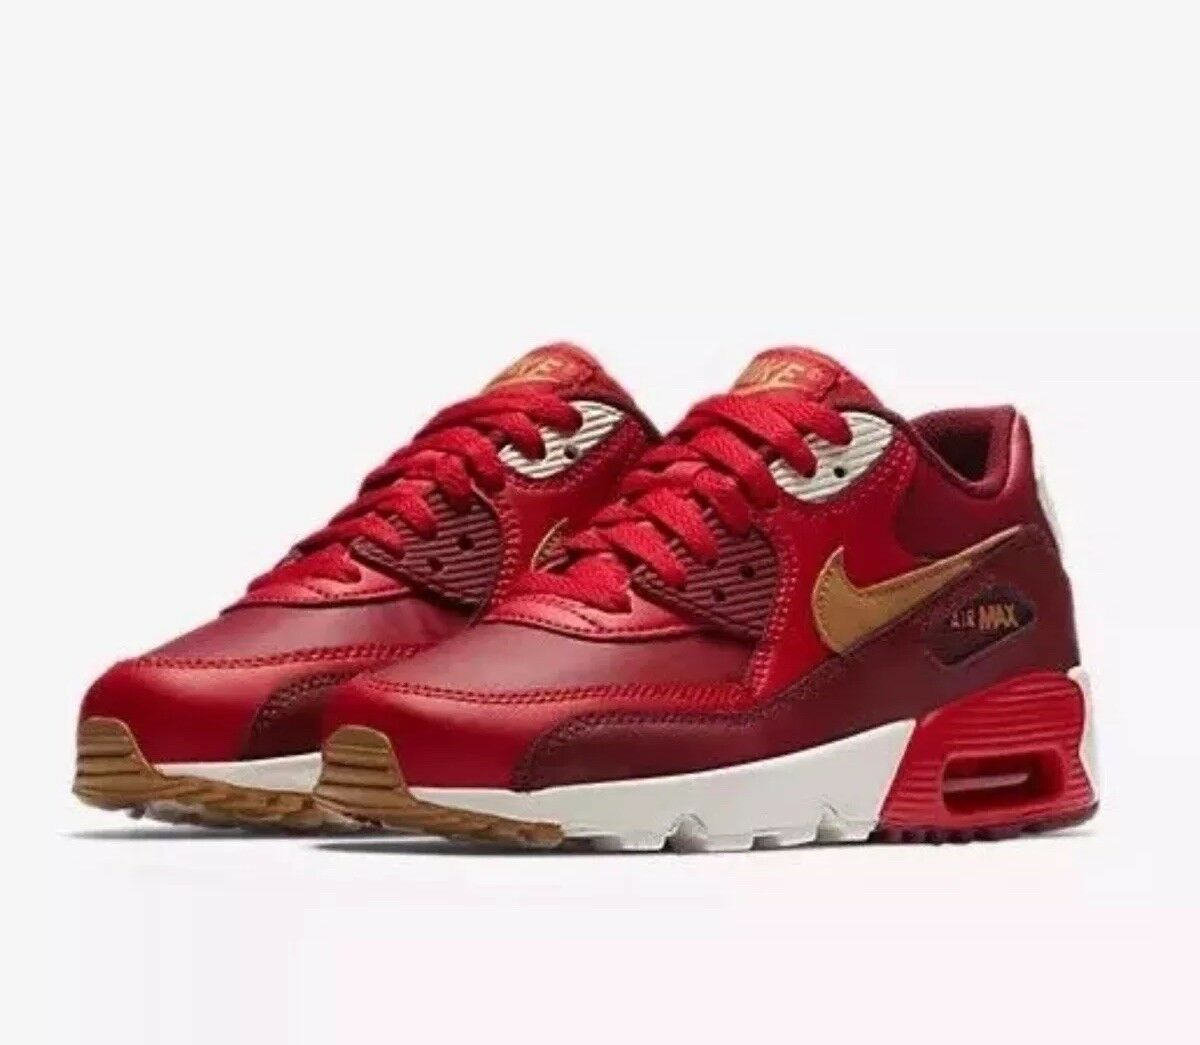 NIKE AIR MAX 90 ESSENTIAL 537384 607 GAME RED ELEMENT gold TEAM RED